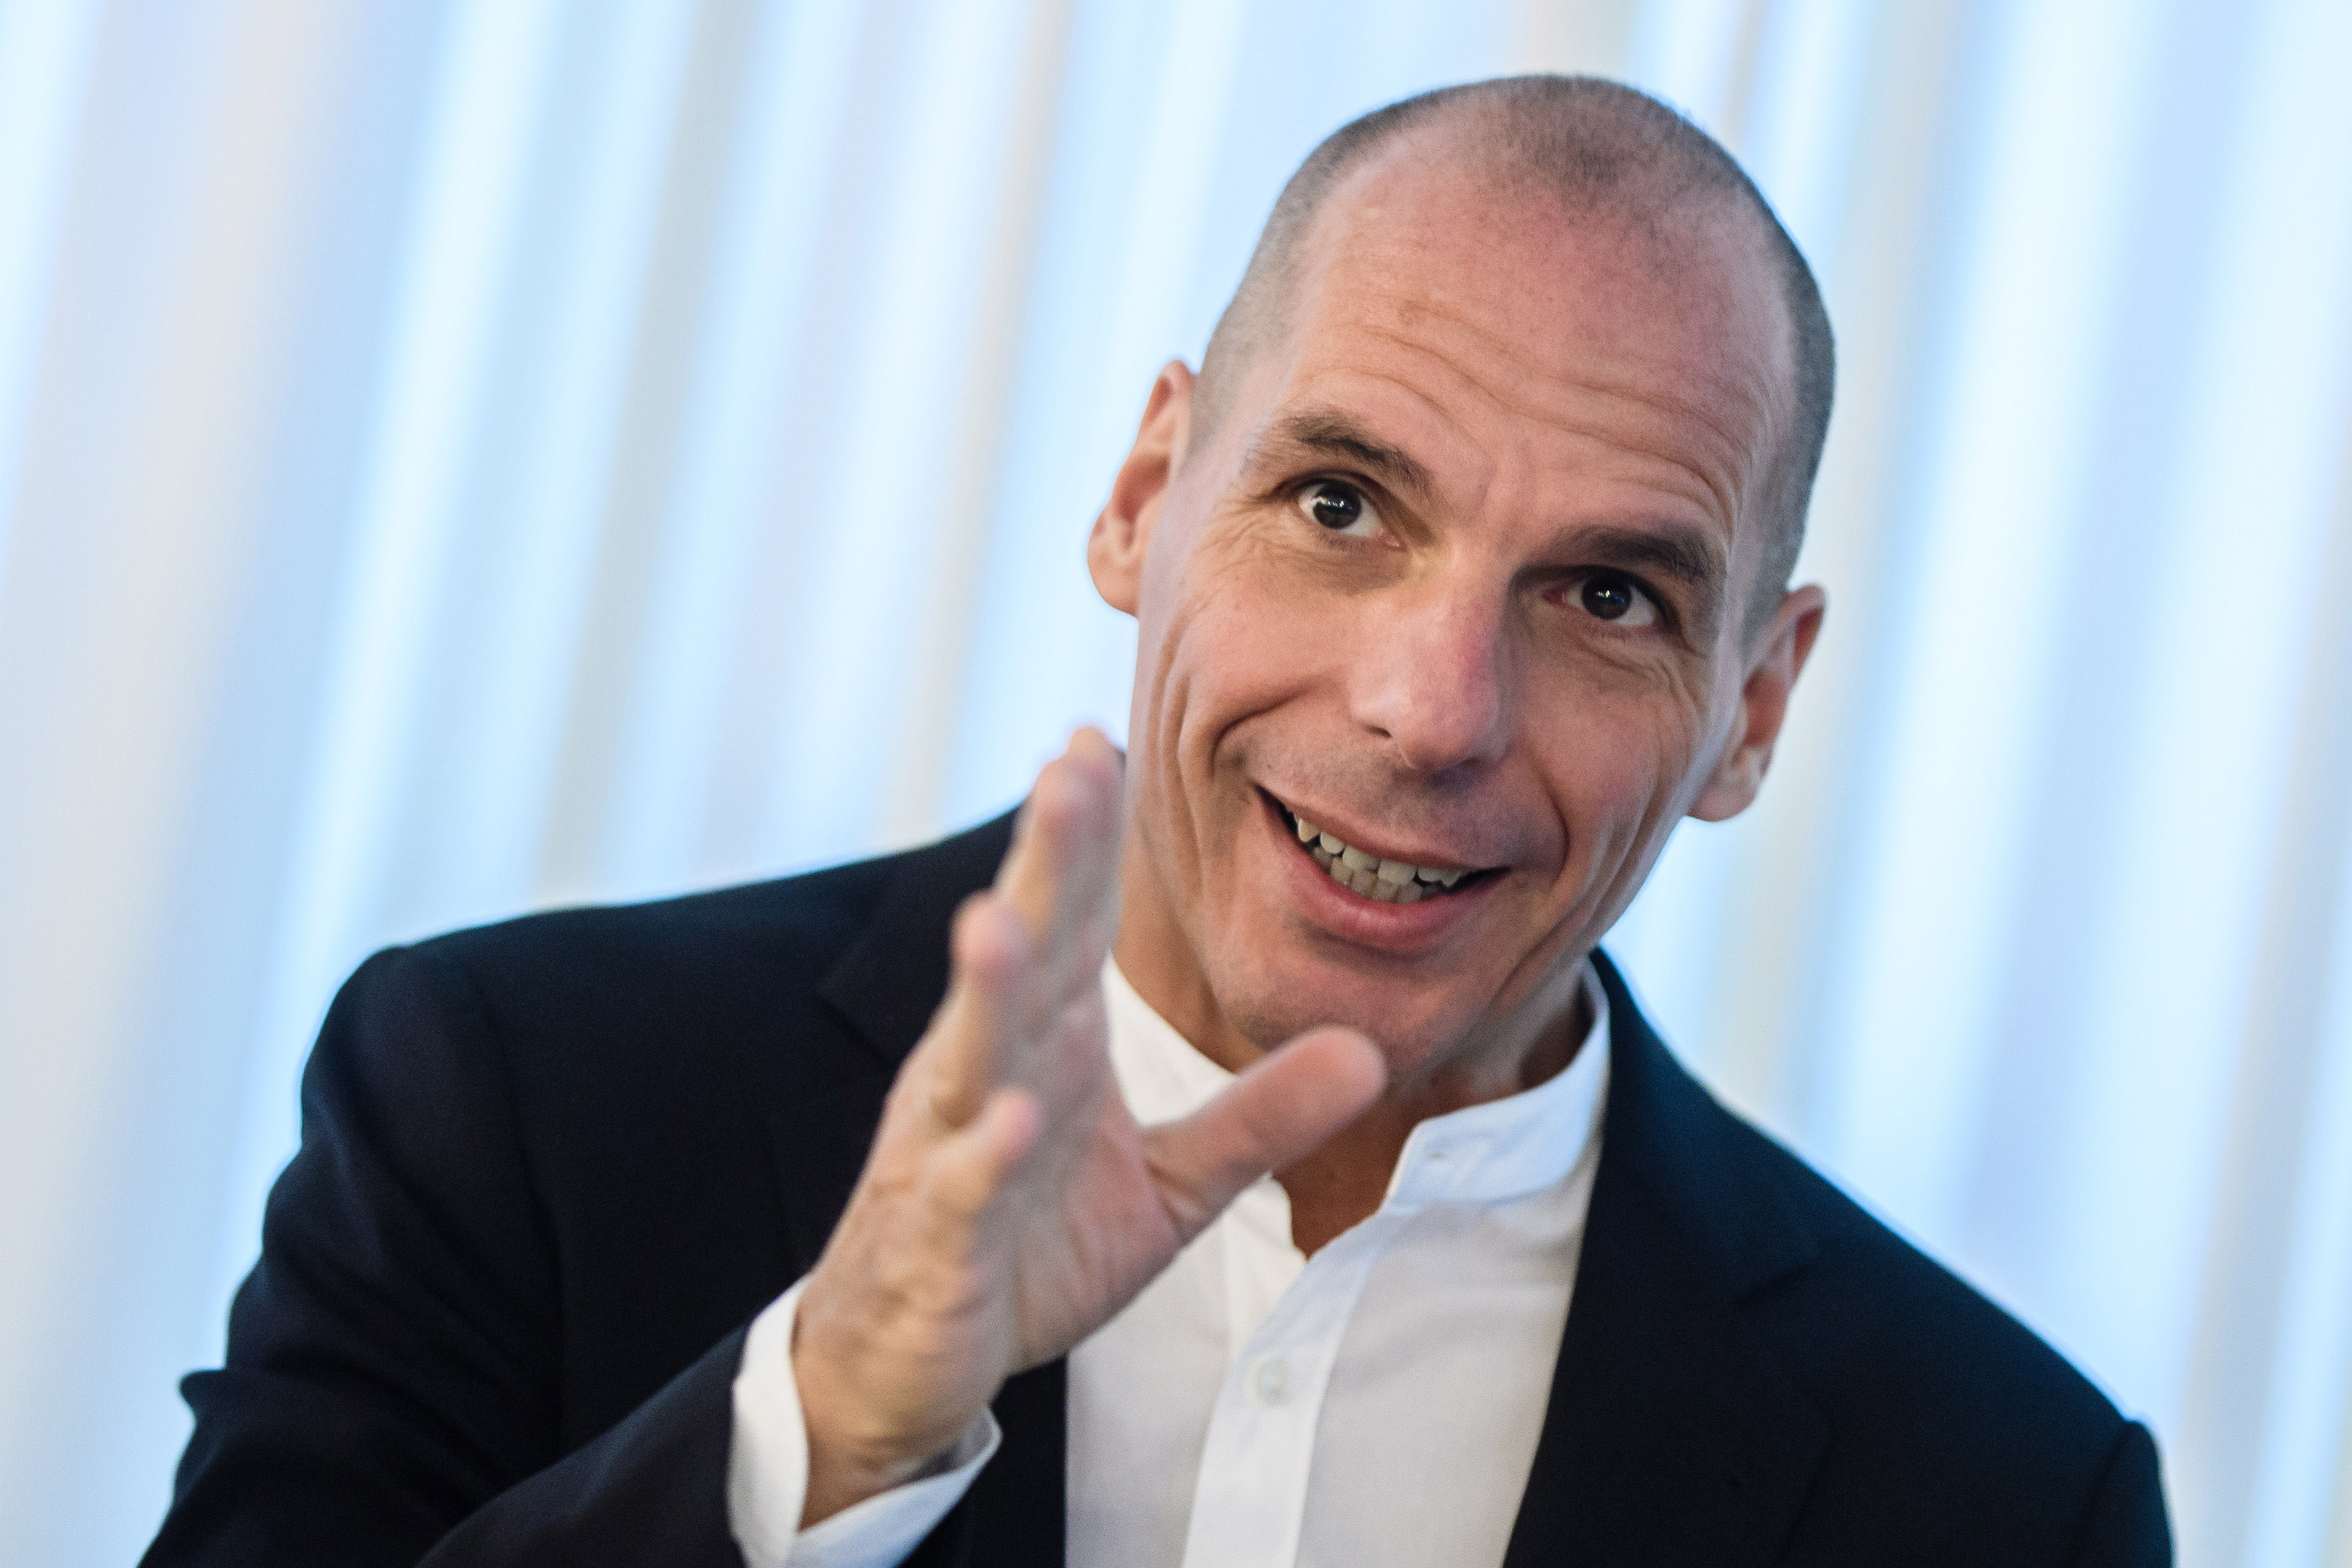 epa07189345 Former Greek finance minister Yanis Varoufakis gestures while speaking during a press conference on his election as top candidate of the movement 'Democracy in Europe Movement 2025' (DiEM25 ) in Berlin, Germany, 25 November 2018. Varoufakis was elected as their top candidate for the upcoming elections for the European Parliament which are due to take place from 23 to 26 May 2018.  EPA/CLEMENS BILAN